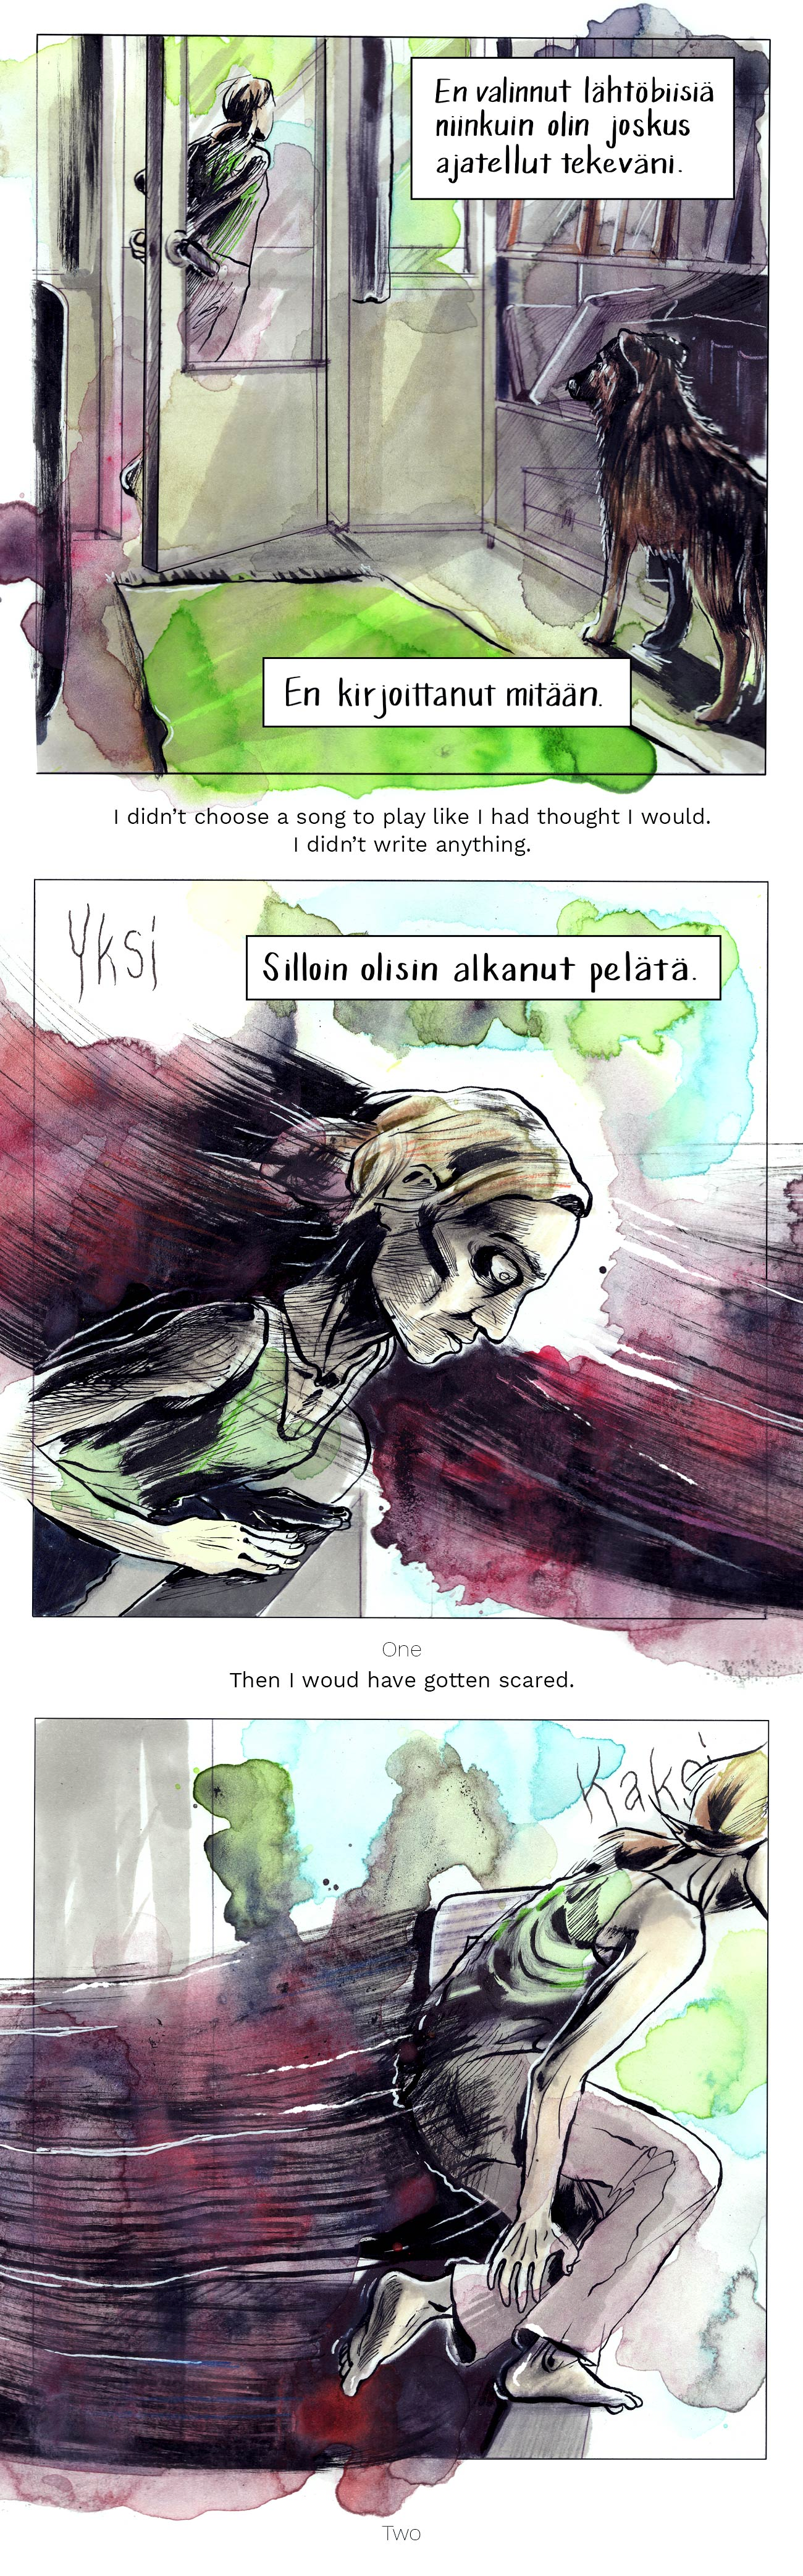 Sarjakuva syömishäiriön ja masennuksen tuskasta, itsemurhasta ja elämästä. A webcomic about the pain of eating disorders and depression, suicide and life itself.